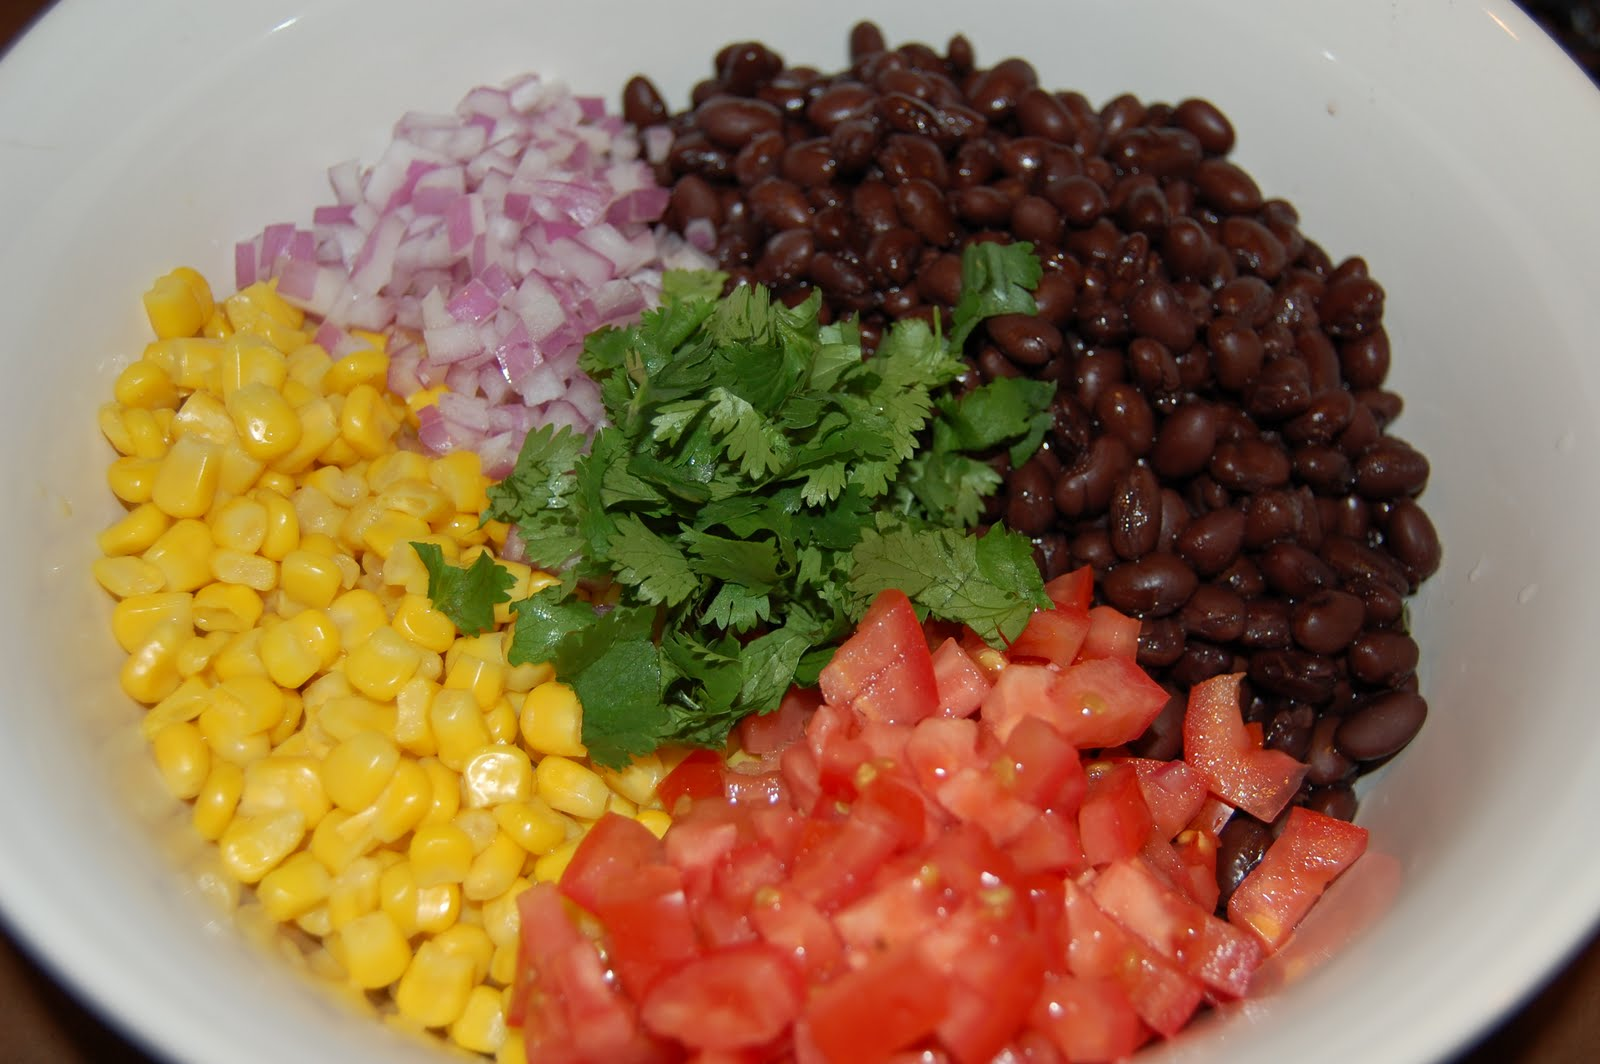 Dinner with The Donnells: Southwestern Black Bean Salad